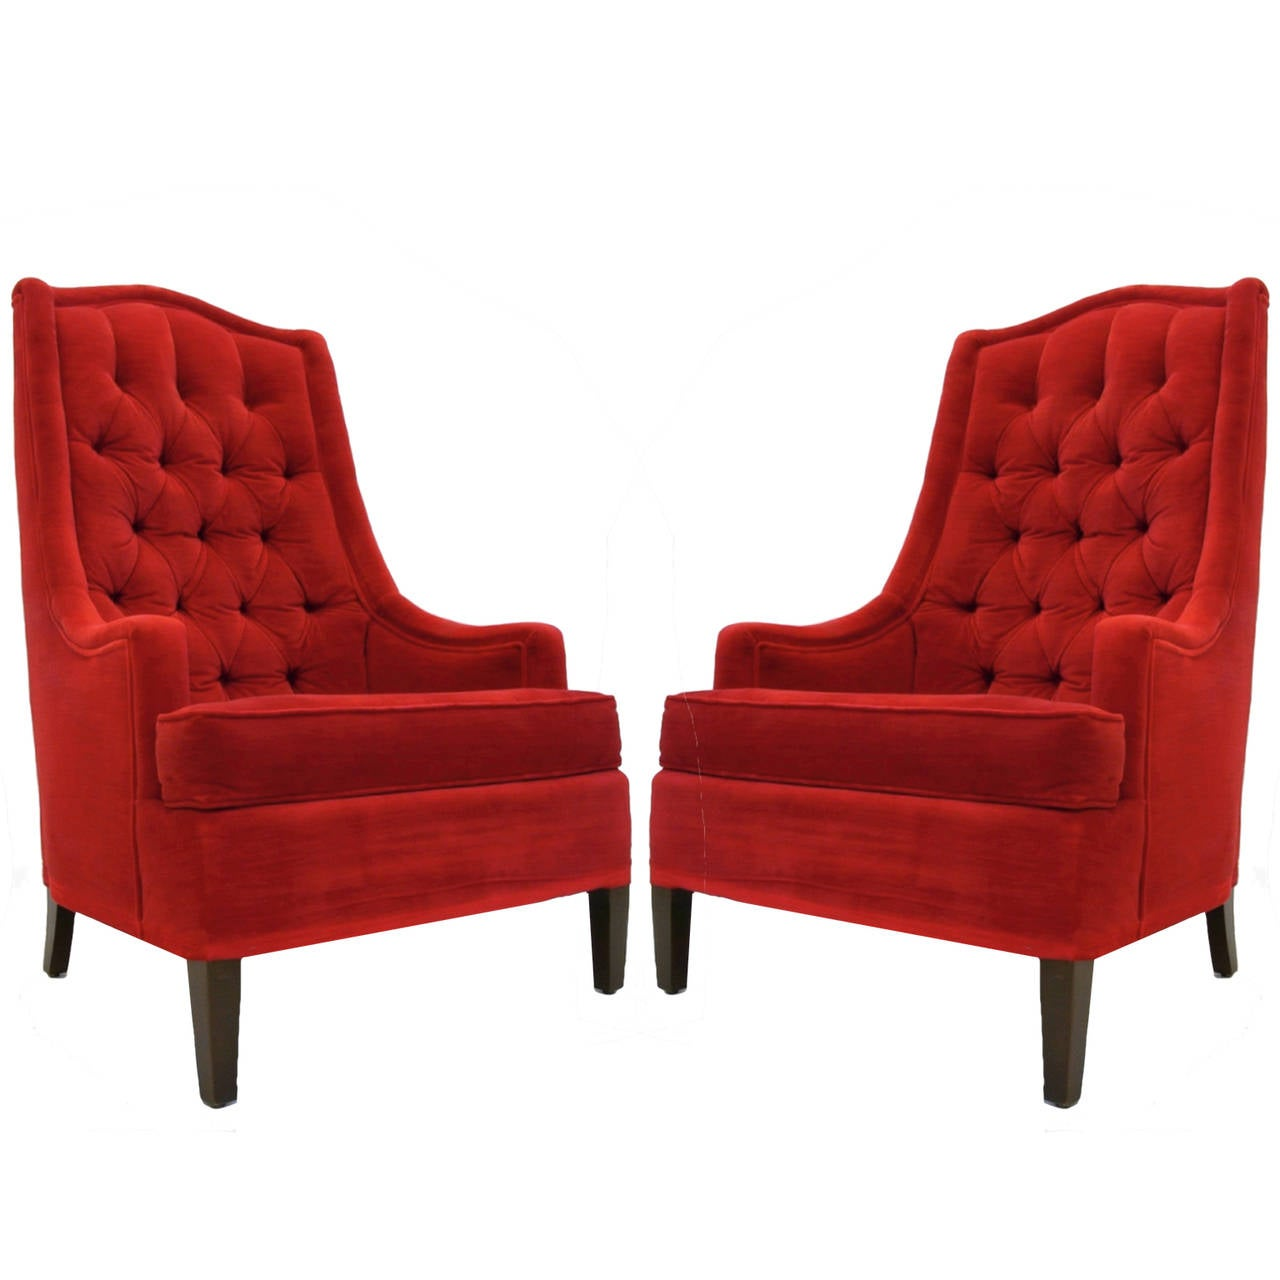 Red velvet chair - Excellent Pair Of Tufted Red Velvet Classic Regency Arm Or Club Chairs 2